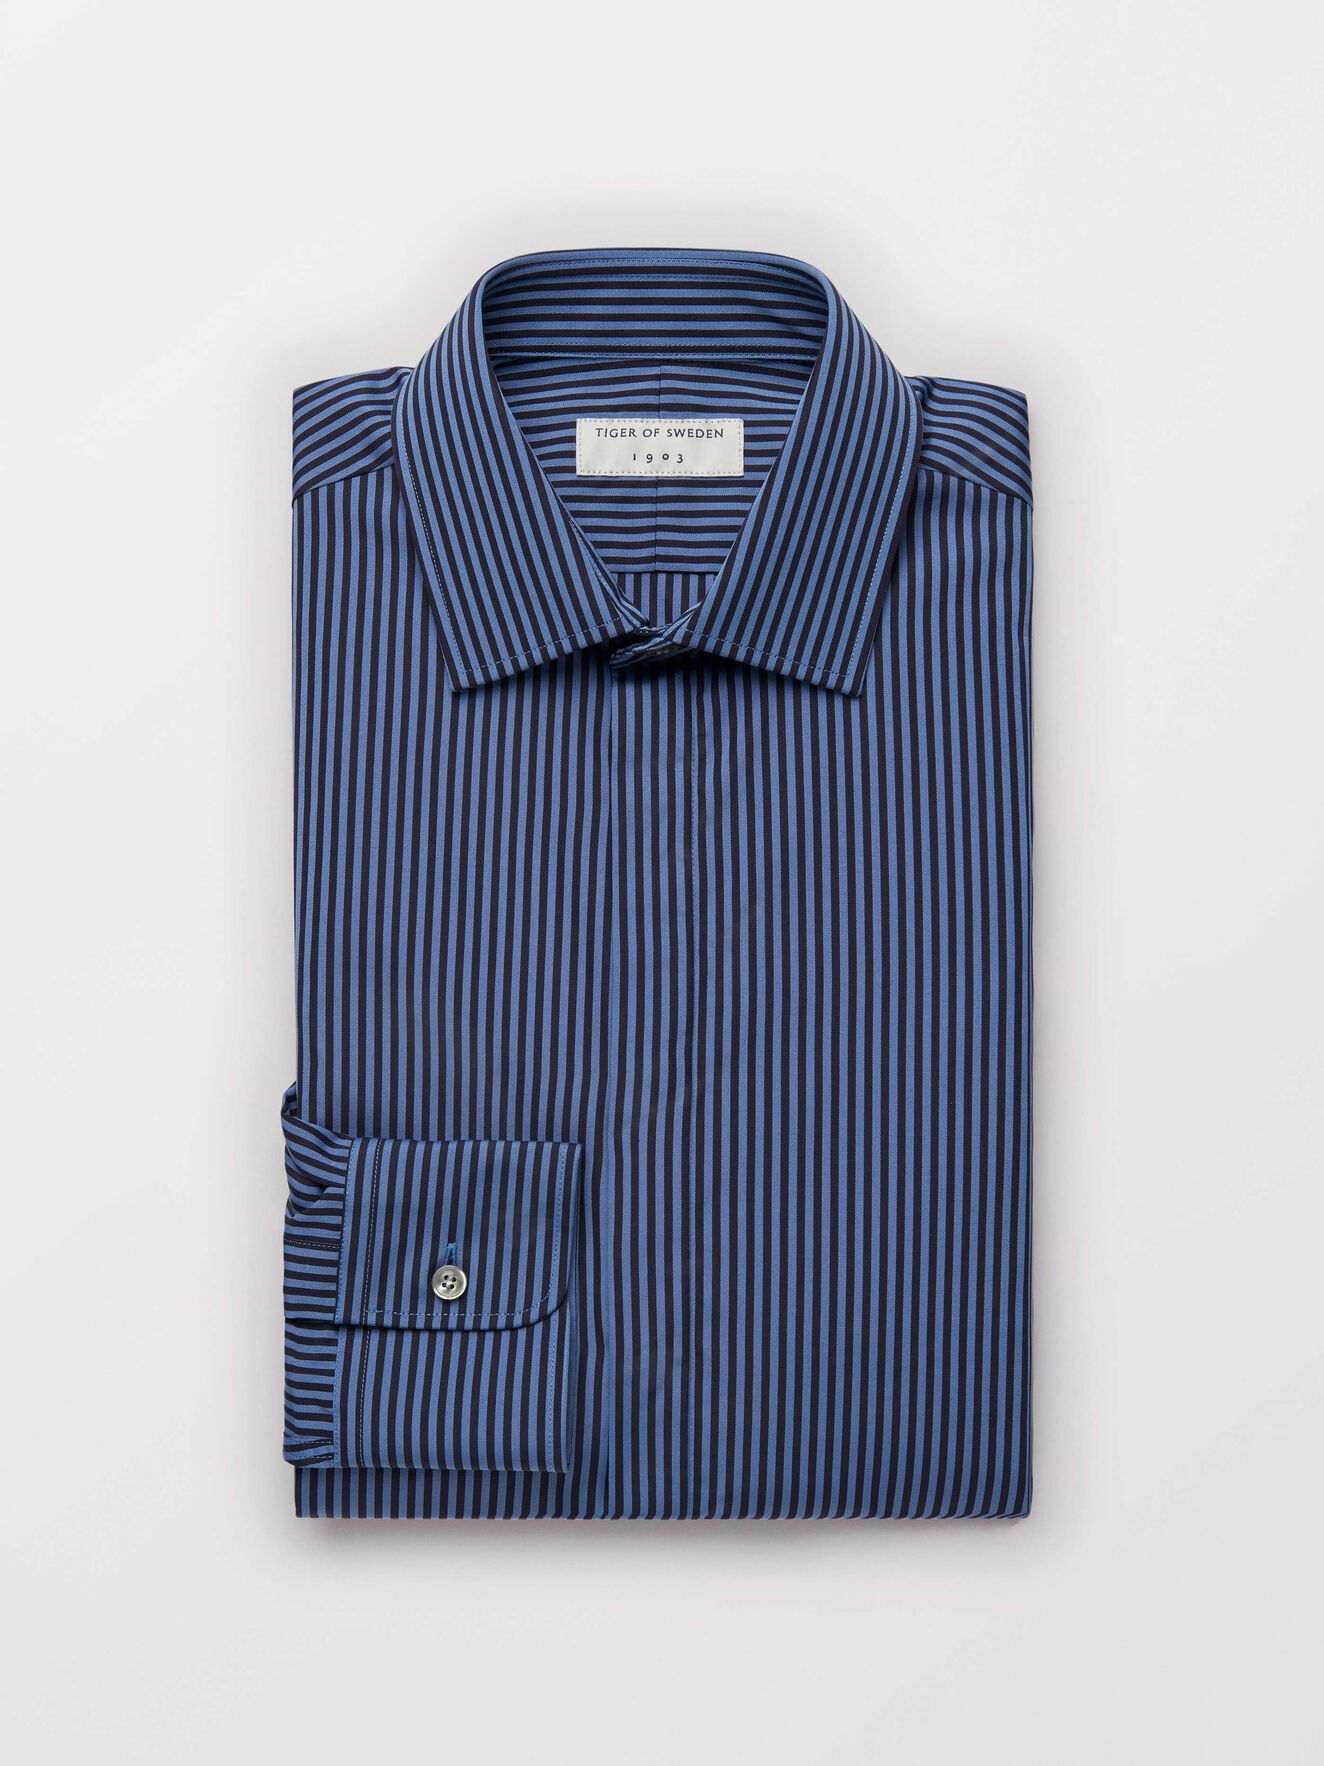 Farris Shirt in Light blue from Tiger of Sweden